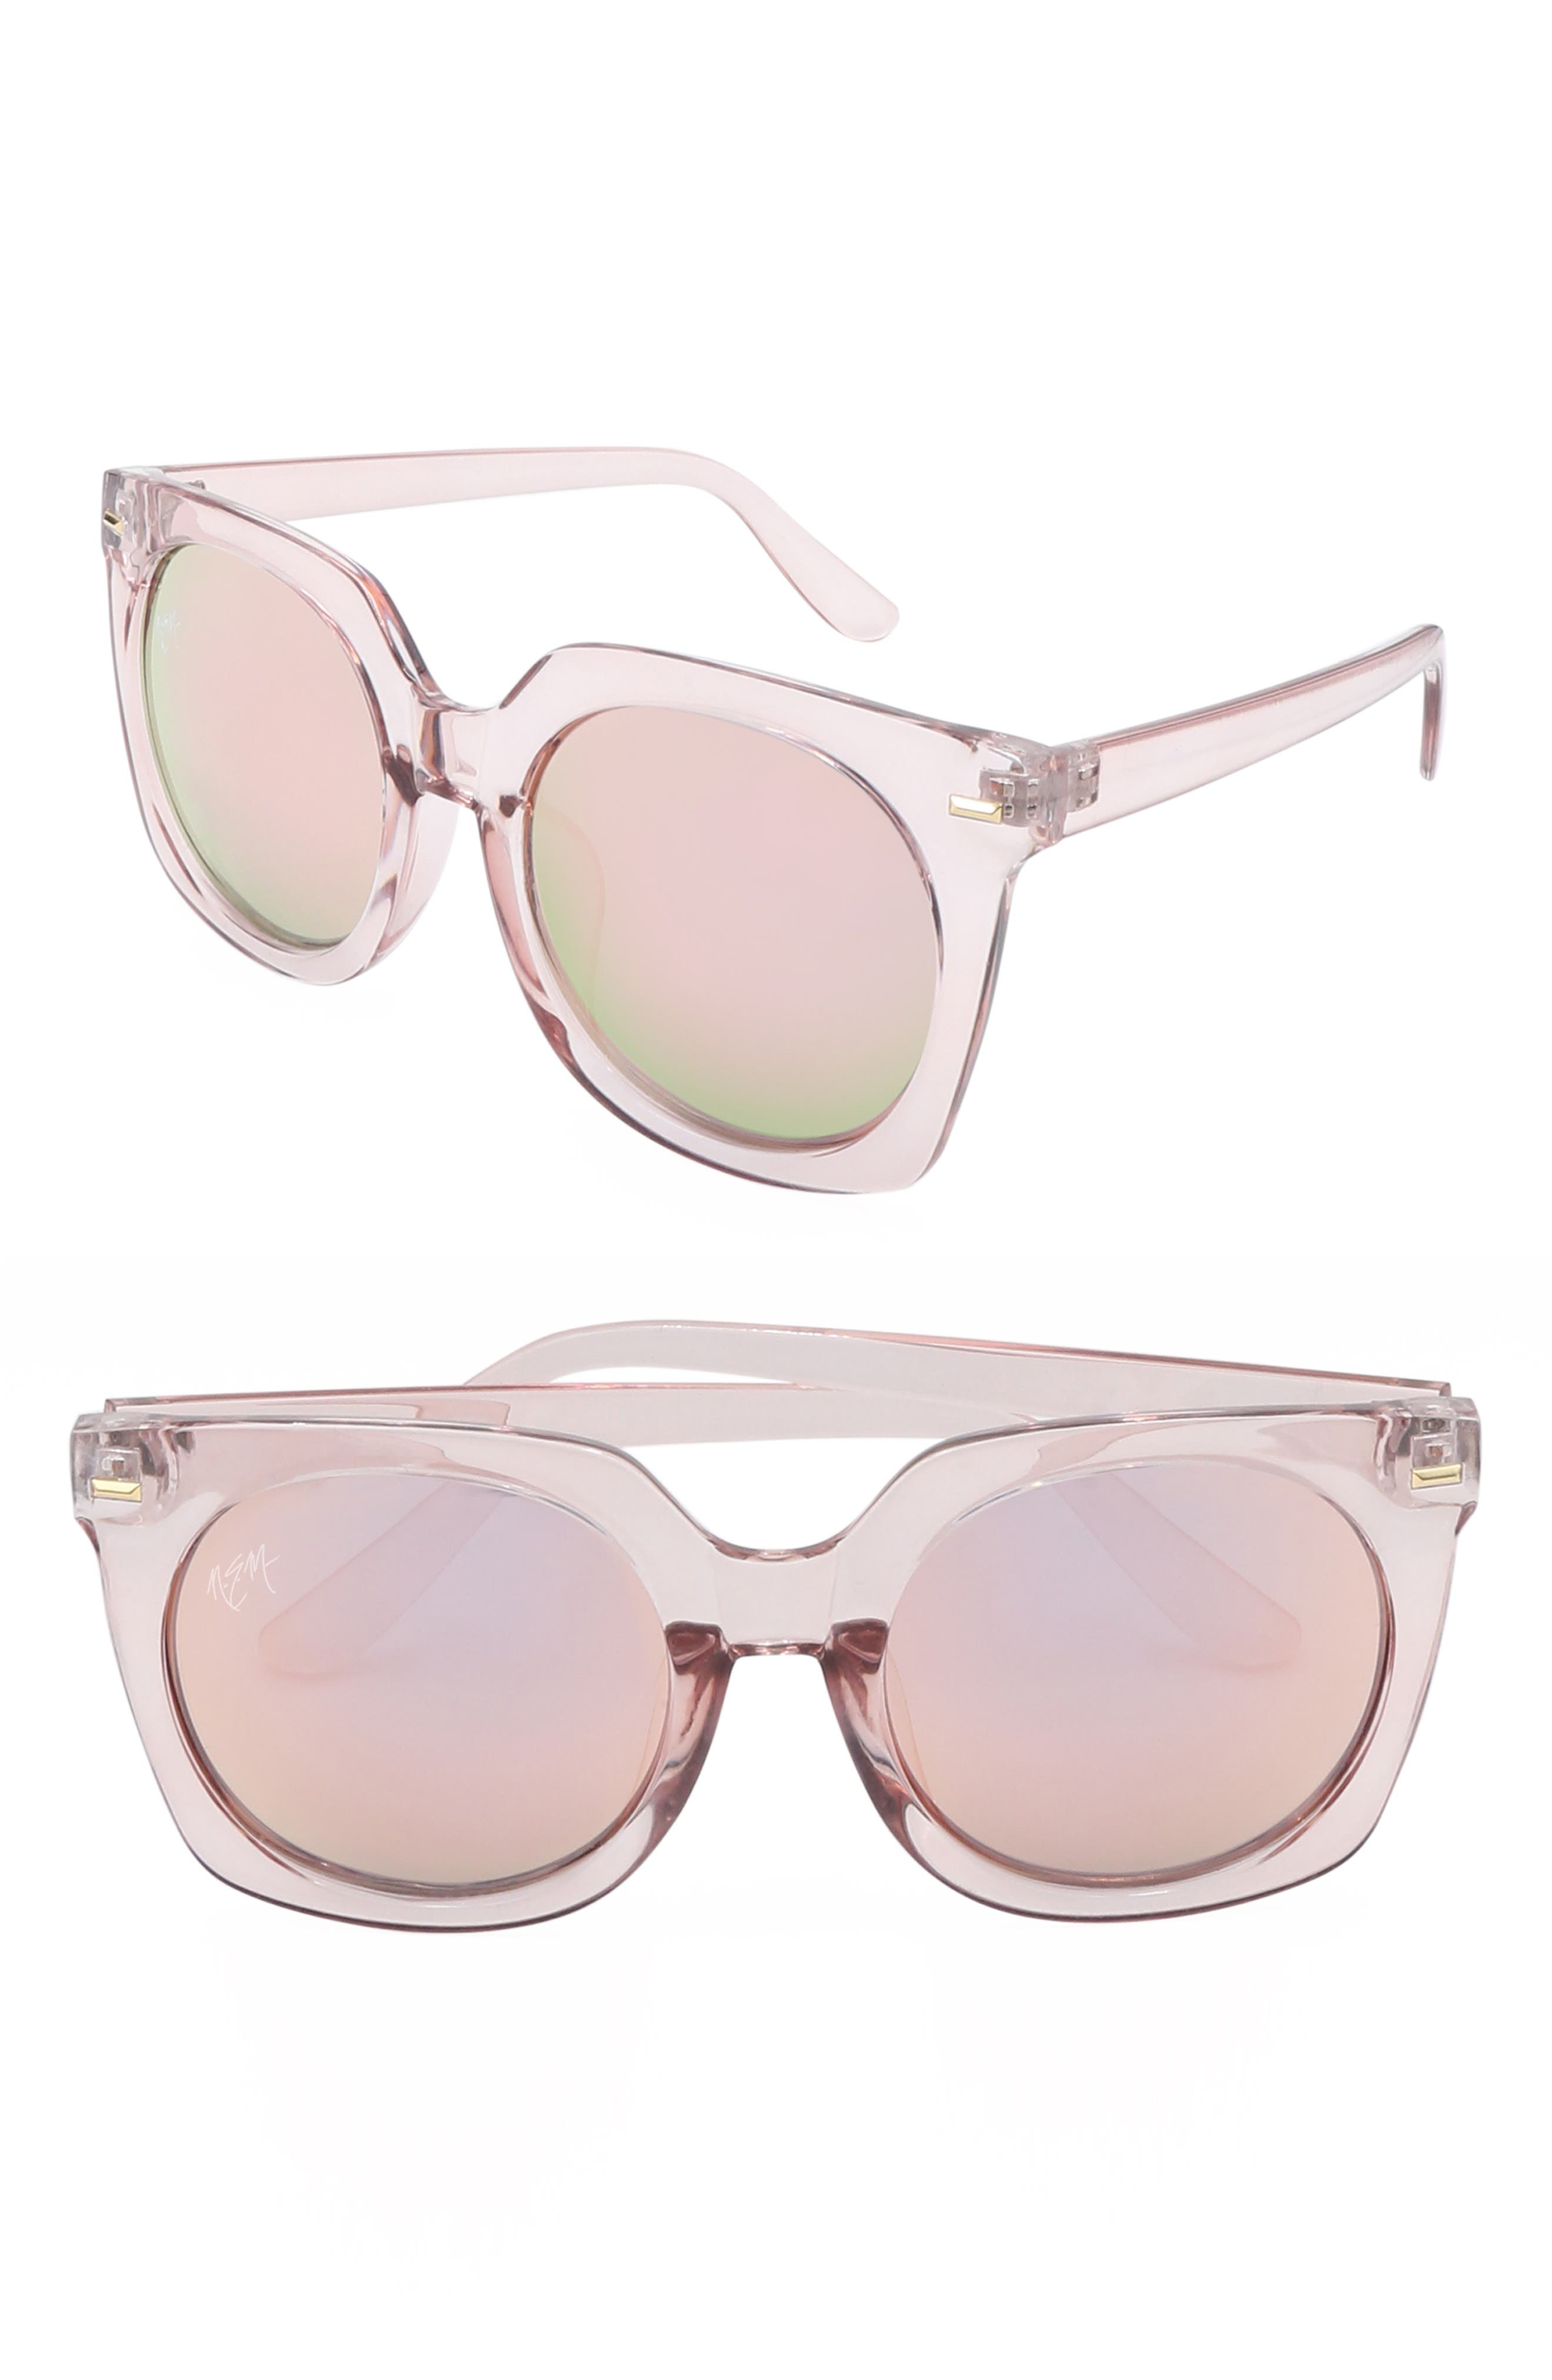 Melrose 55mm Square Sunglasses,                             Main thumbnail 1, color,                             CLEAR CANDY PINK W PINK TINT